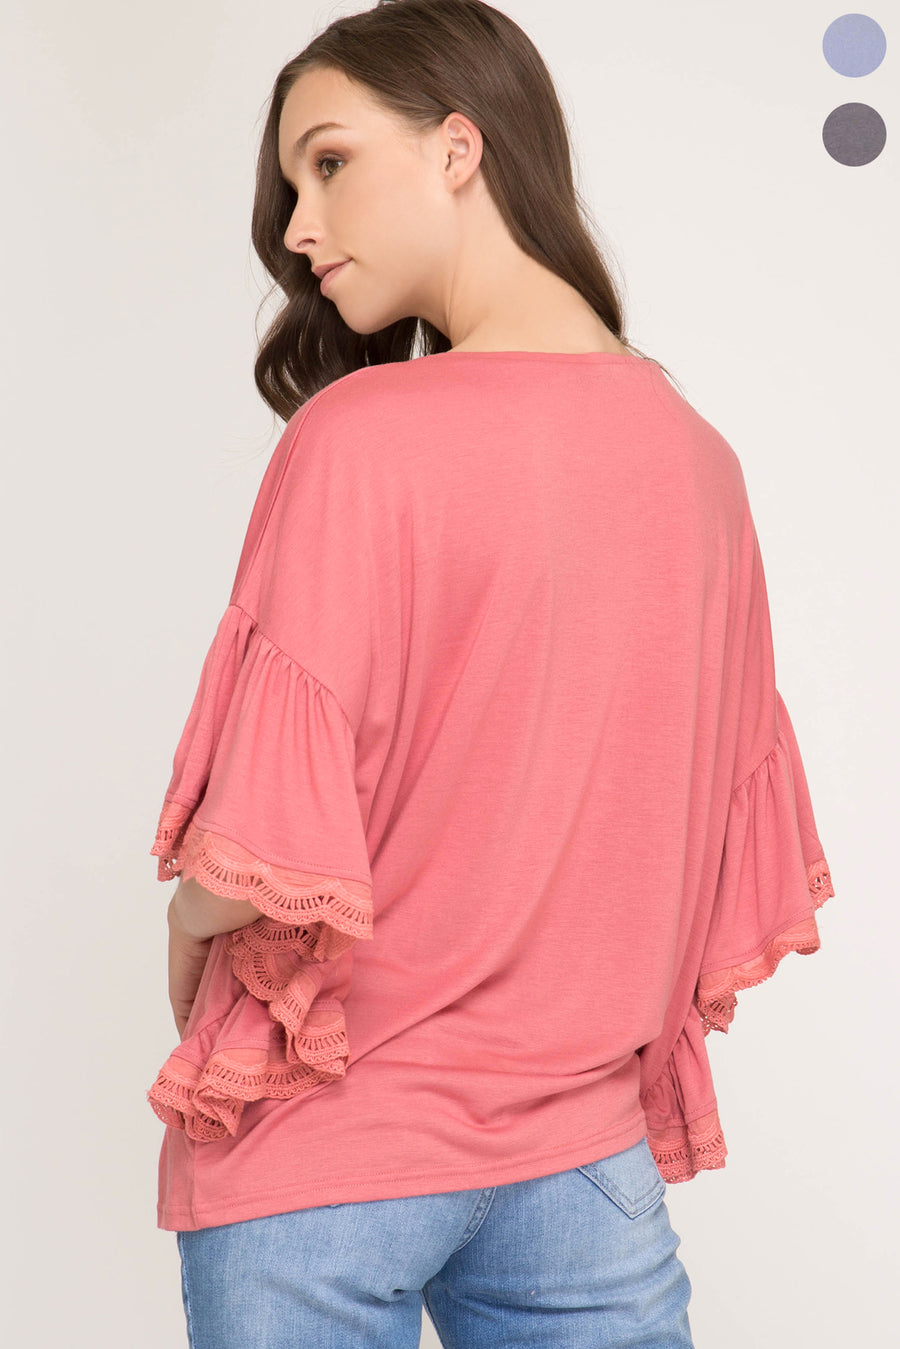 Knit Top With Lace Trimmed Bat-Winged Sleeves!